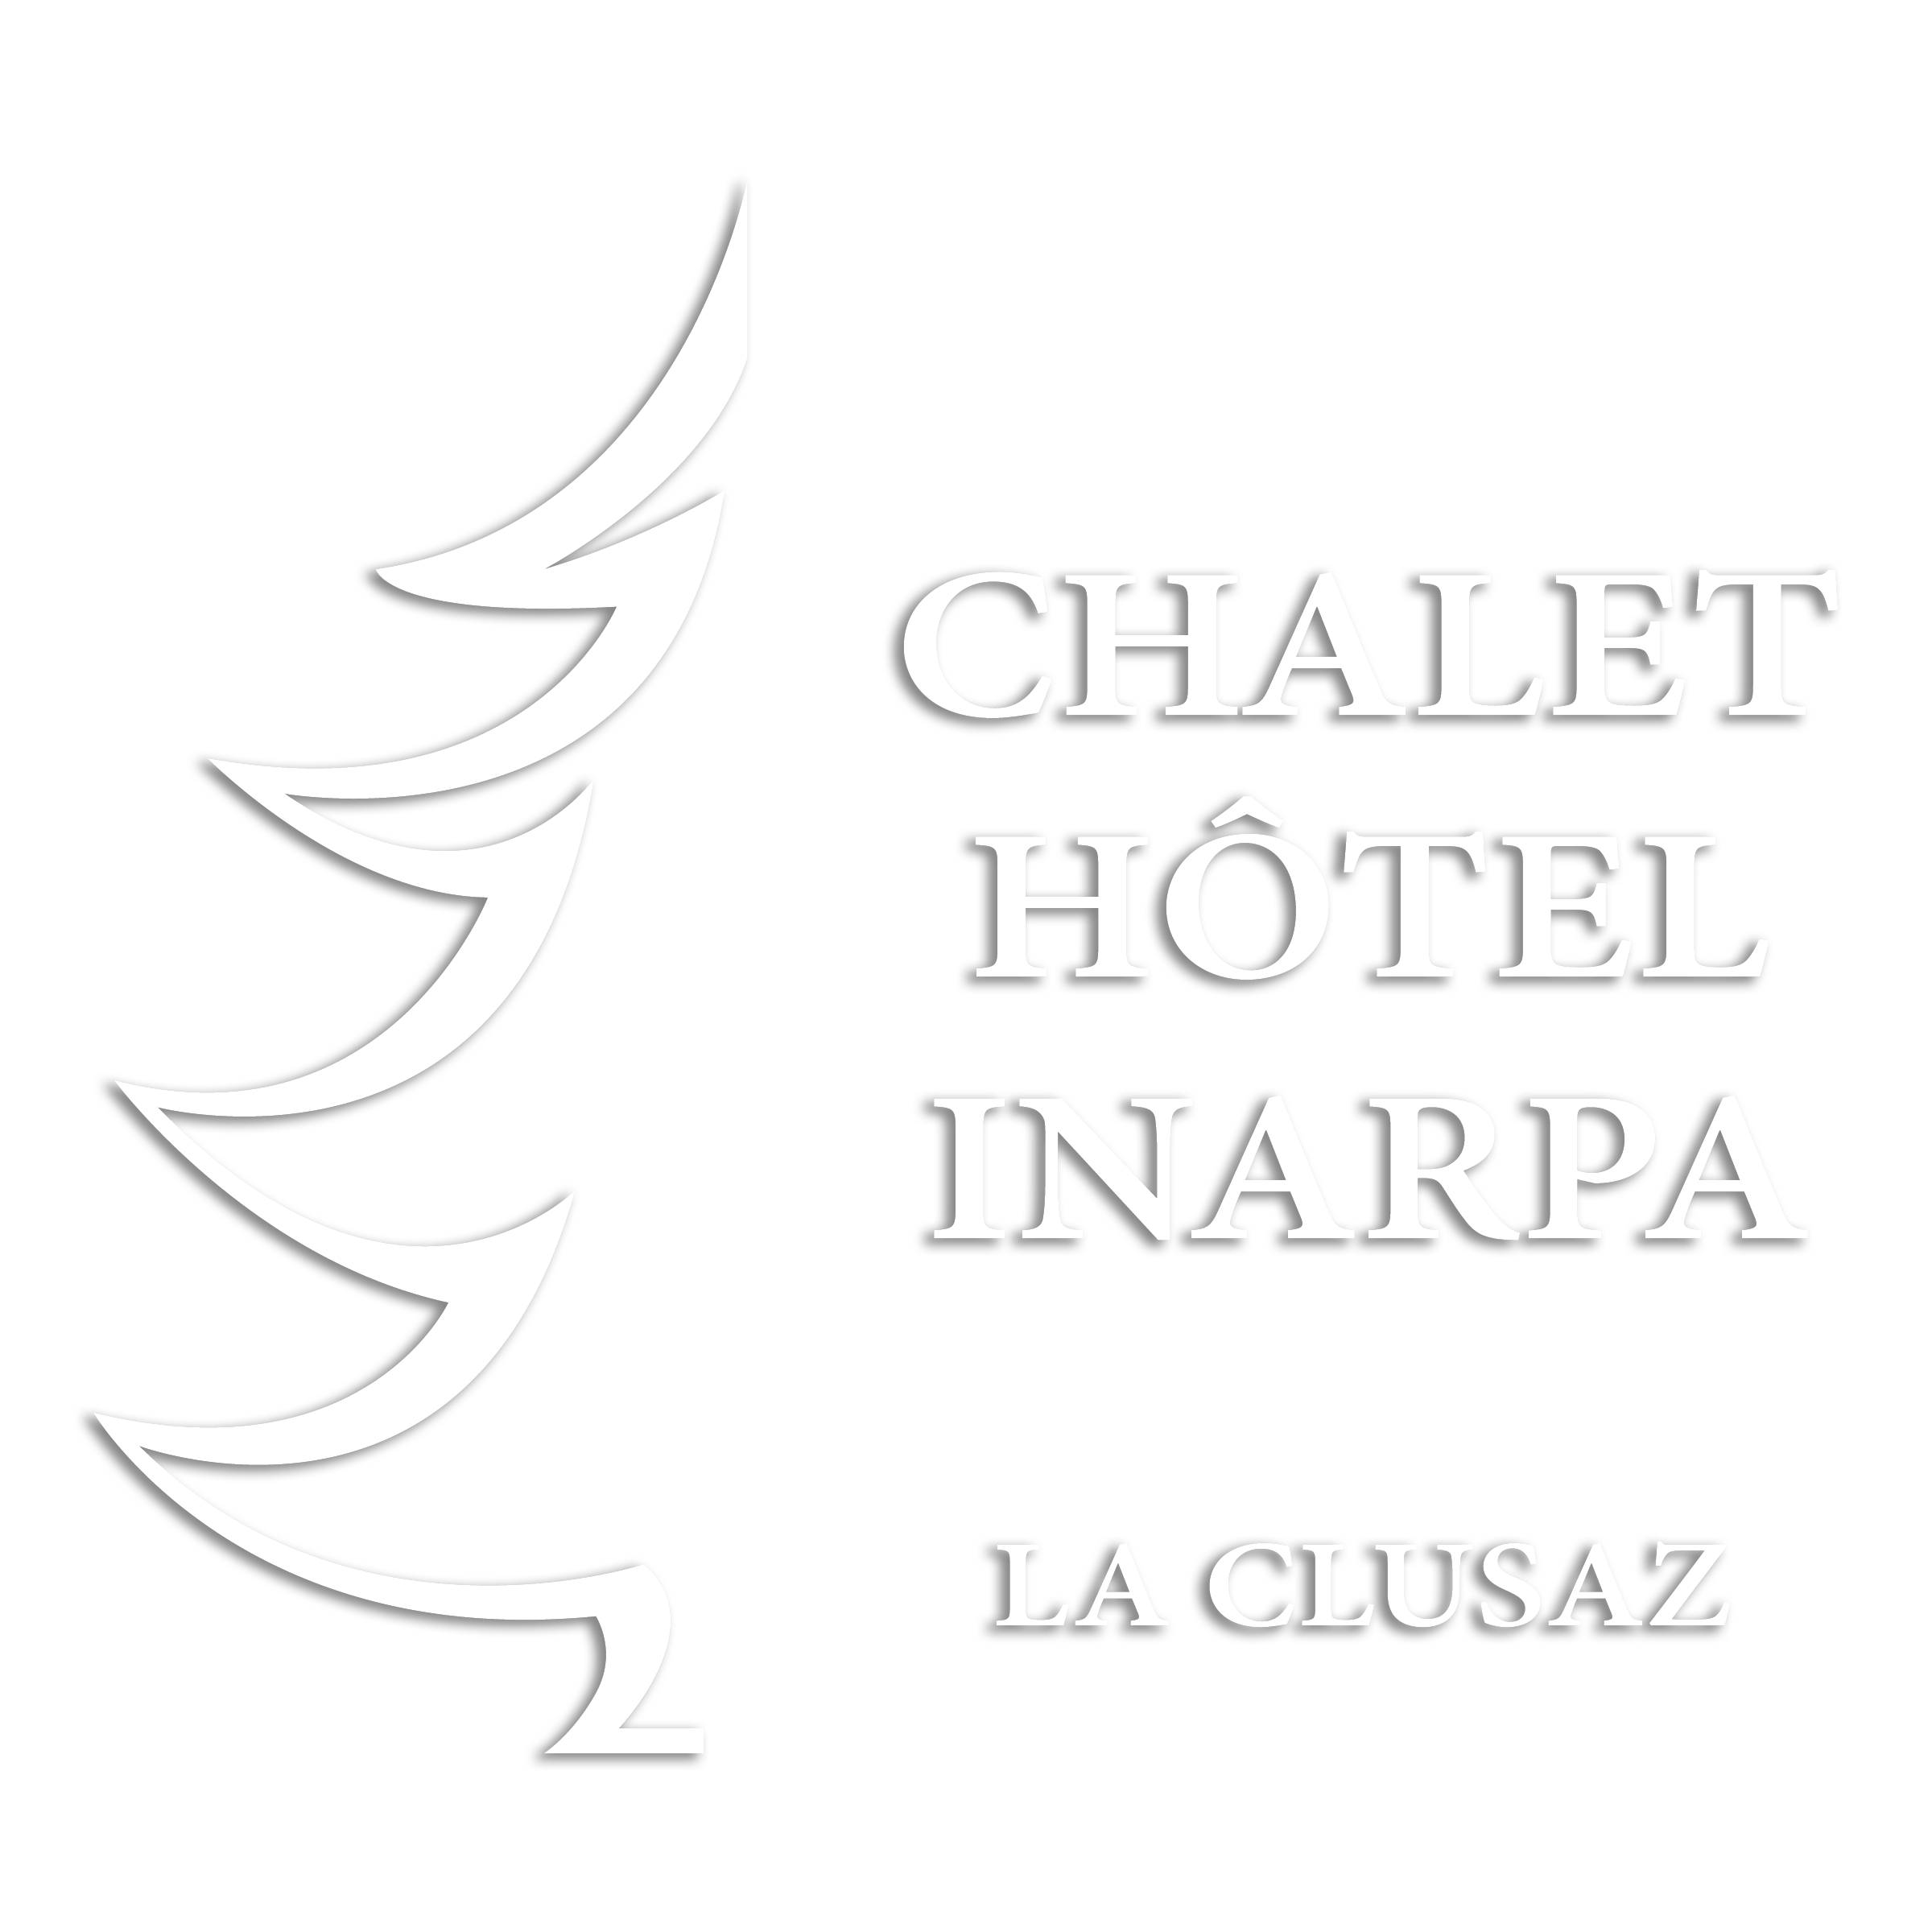 Chalet Hotel Inarpa